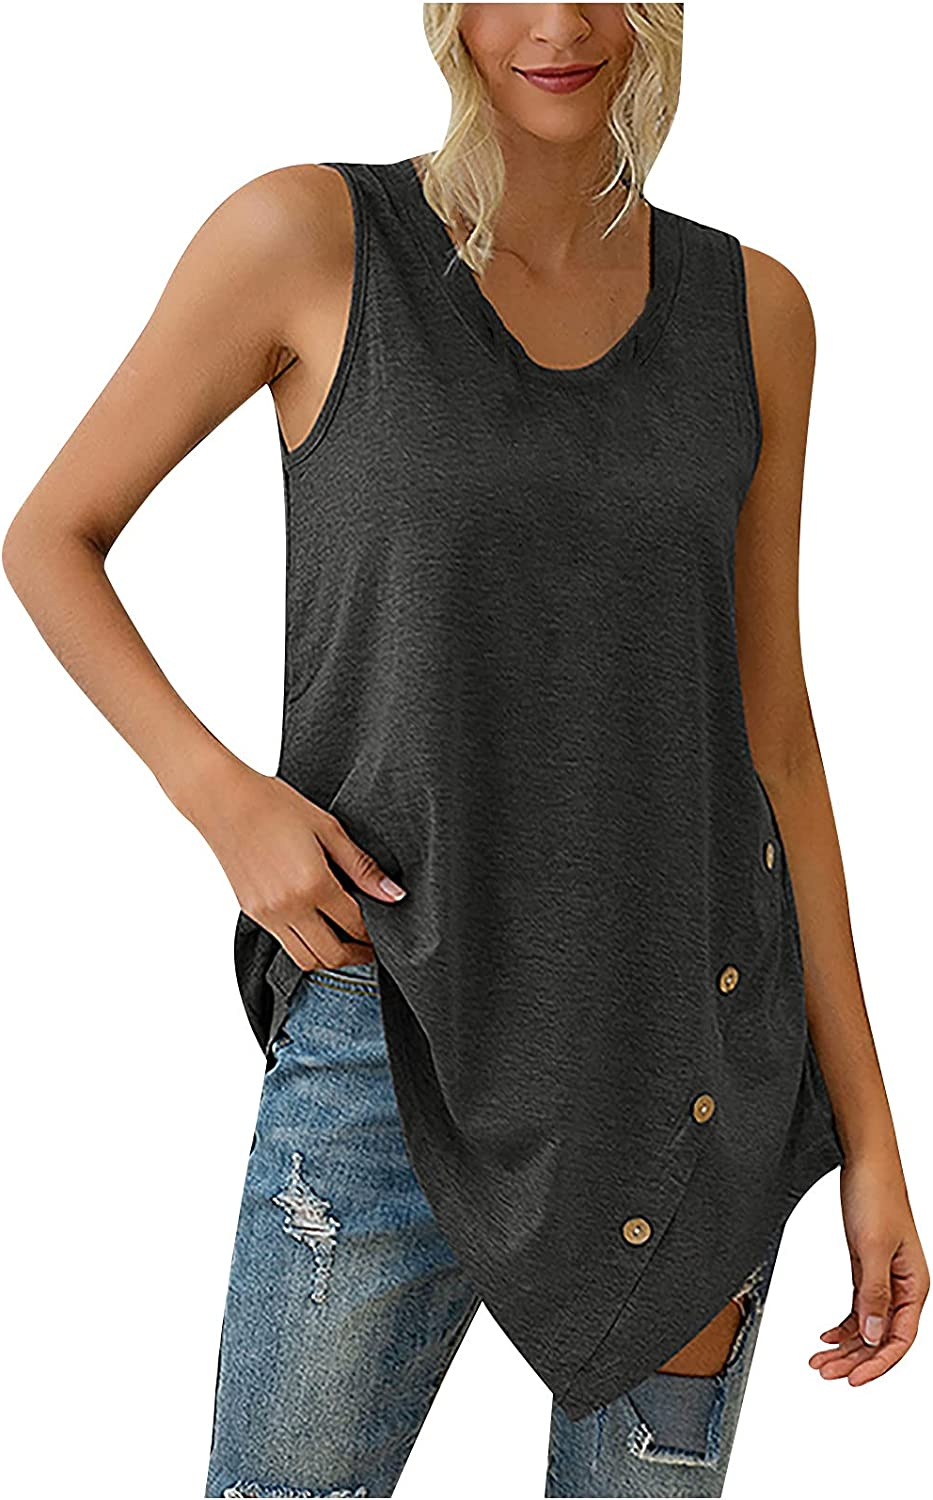 Women Summer Tops Fashion Women's Summer Solid O-Neck Casual Button Sleeveless Vest Blouse